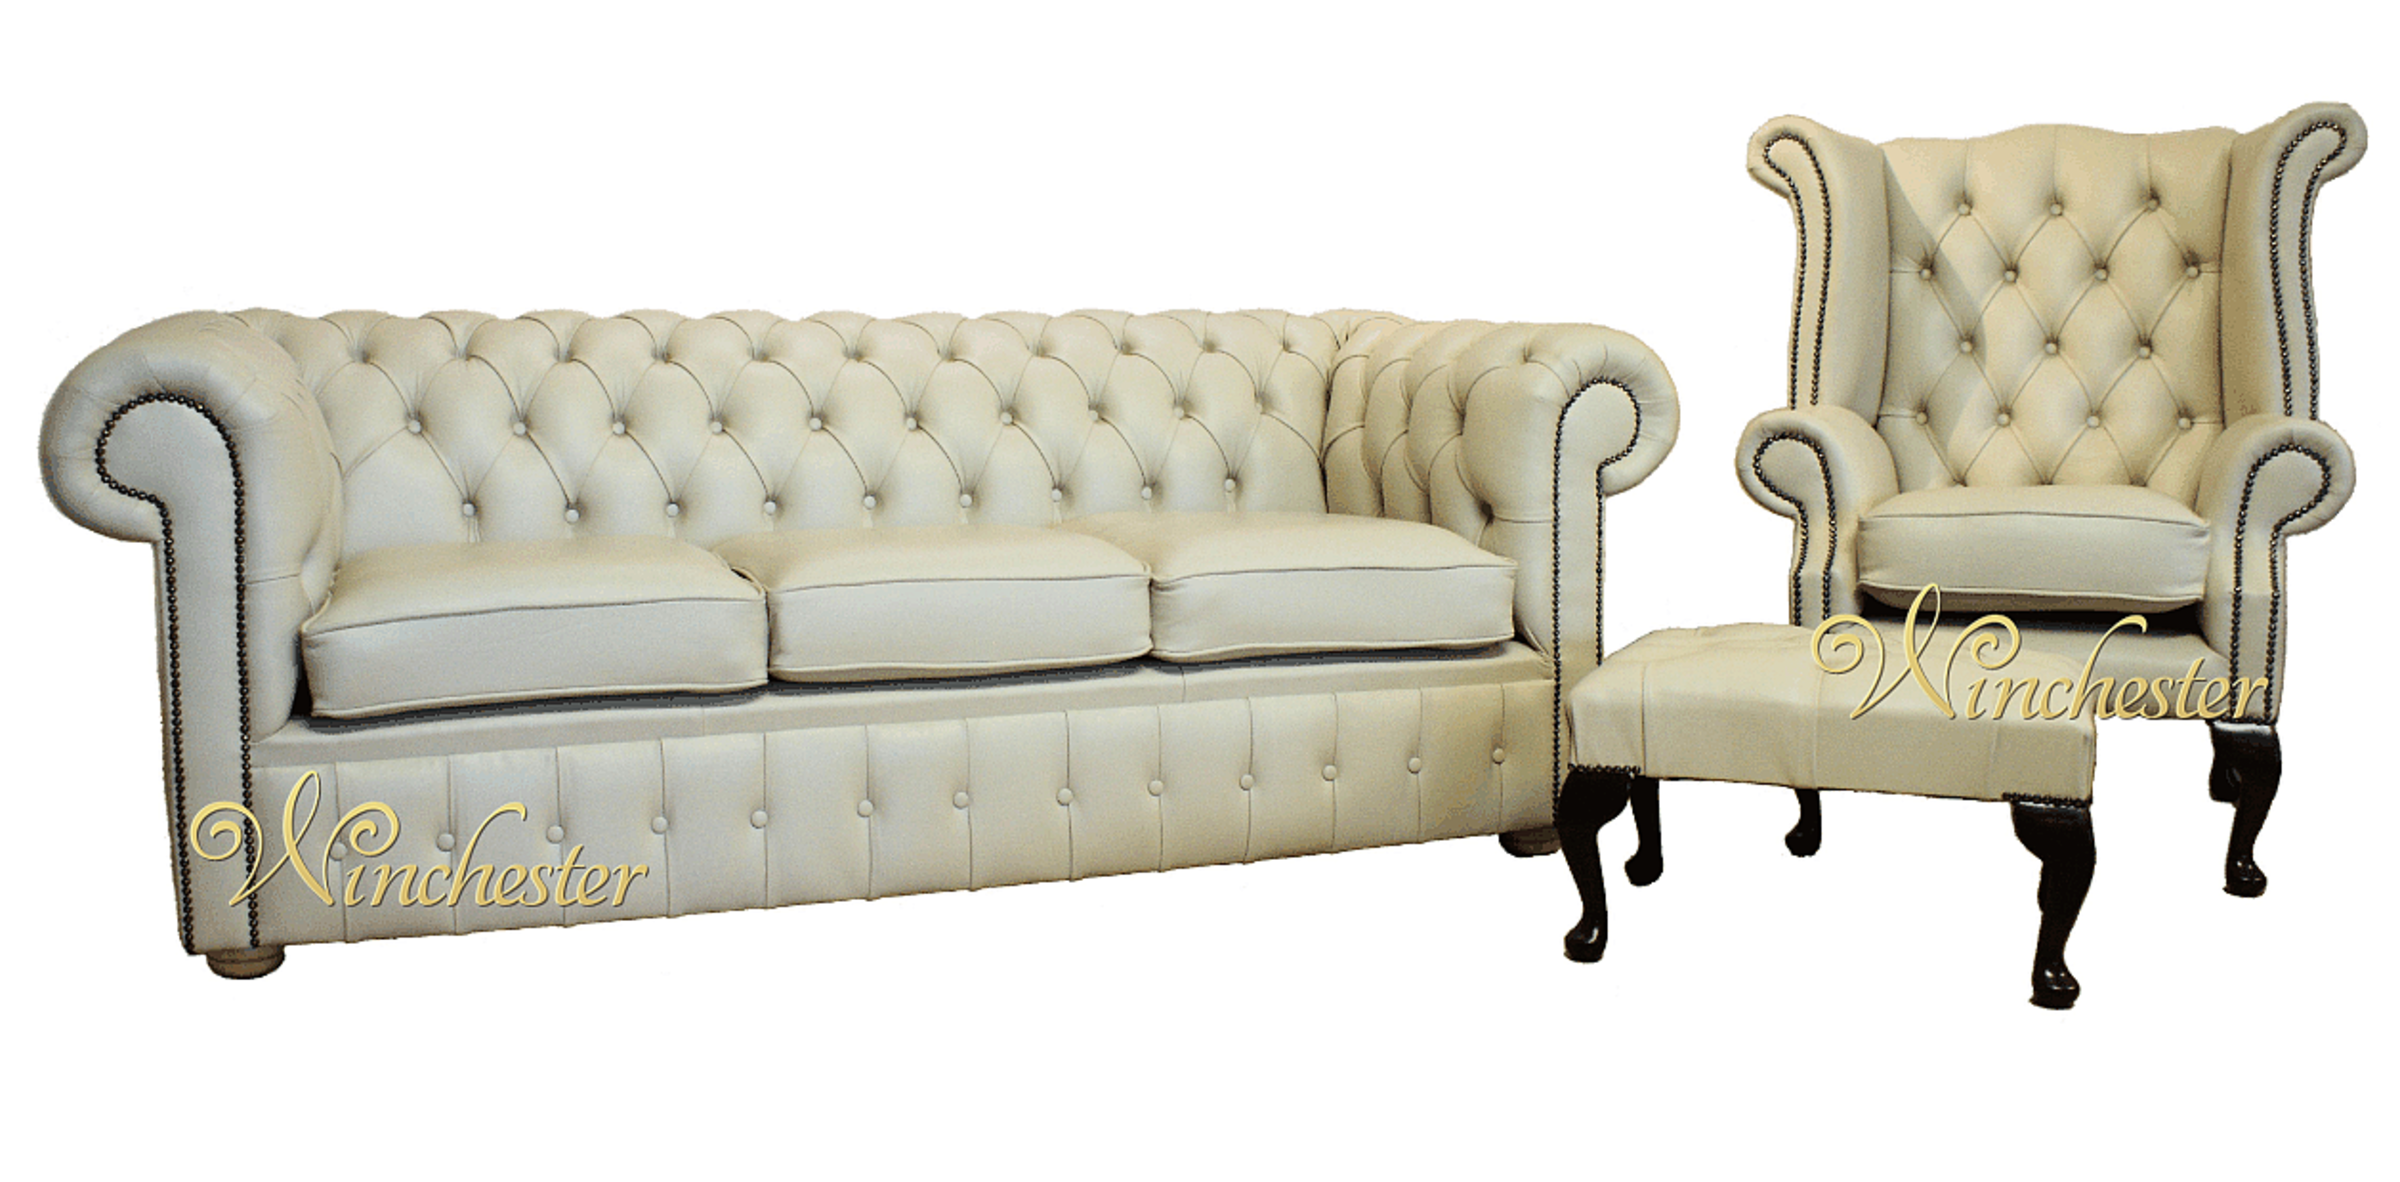 Chesterfield Cream Leather Sofa Offer 3+1+ Footstool, Leather Sofas ...